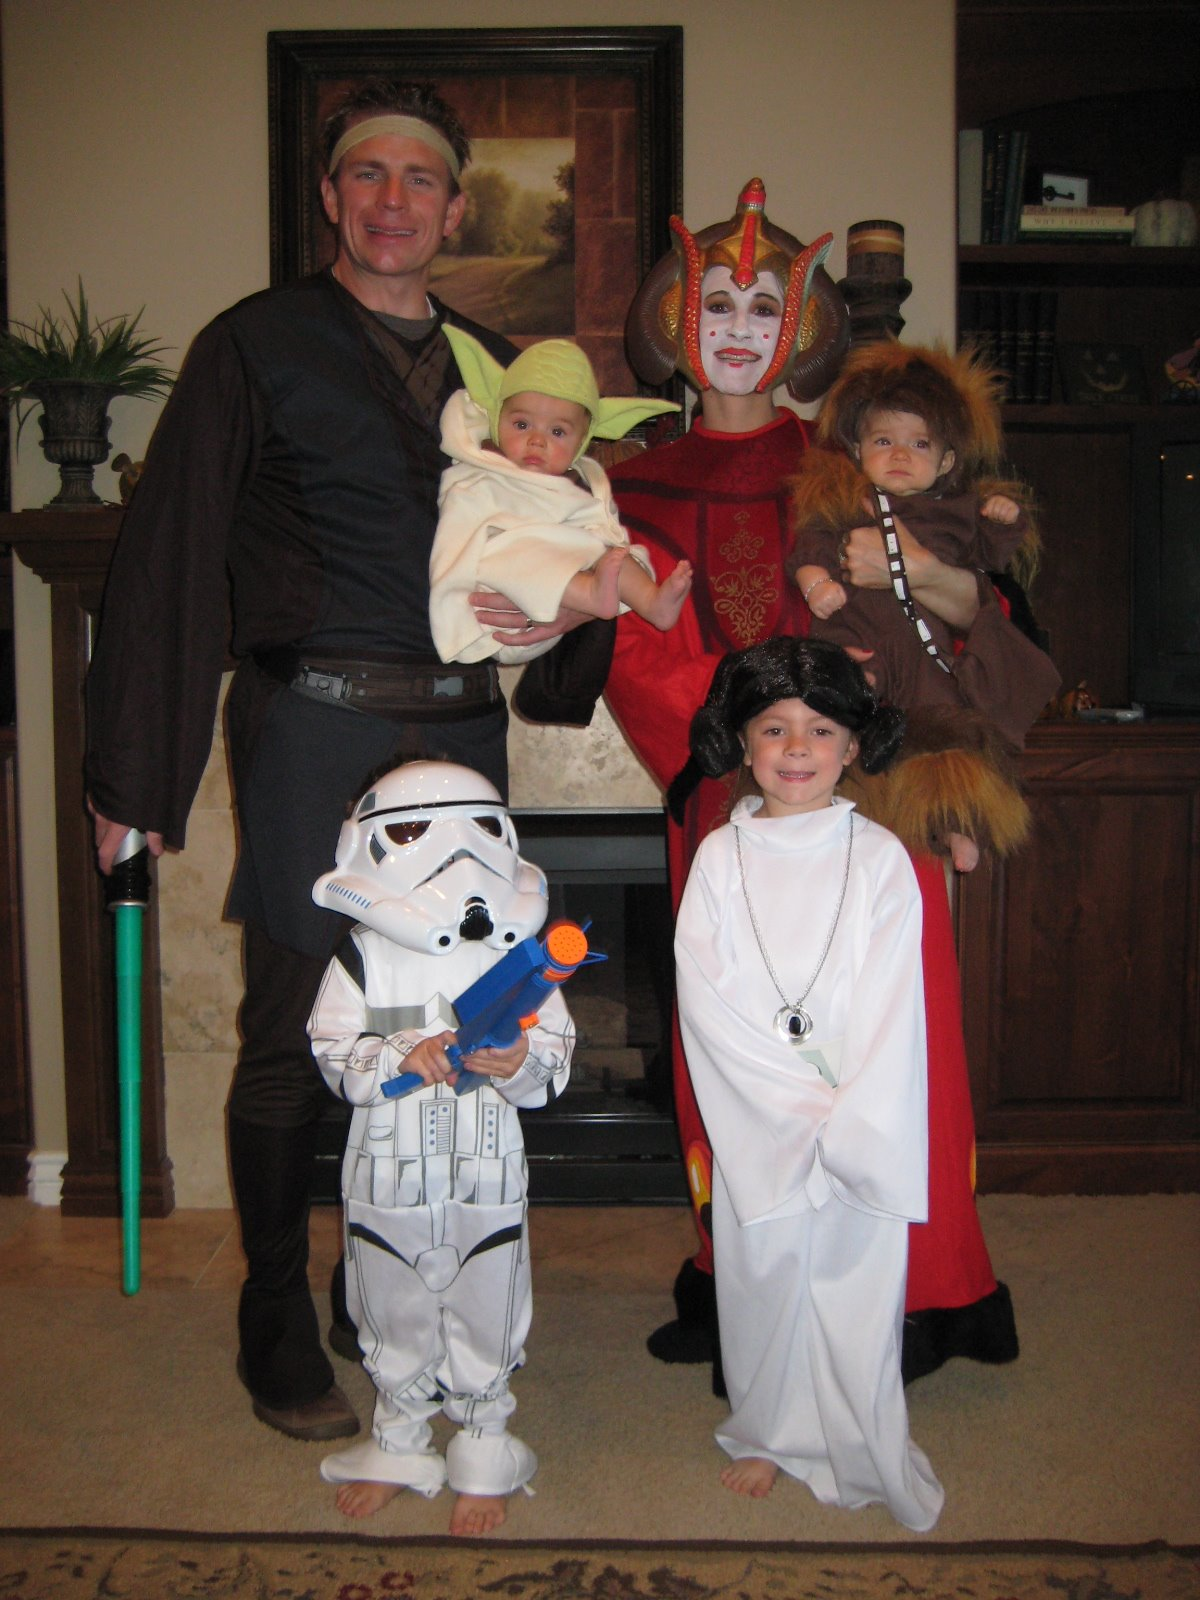 Family Themed Halloween Costumes  sc 1 st  Sew Darn Cute & Sew Darn Cute: Family Themed Halloween Costumes